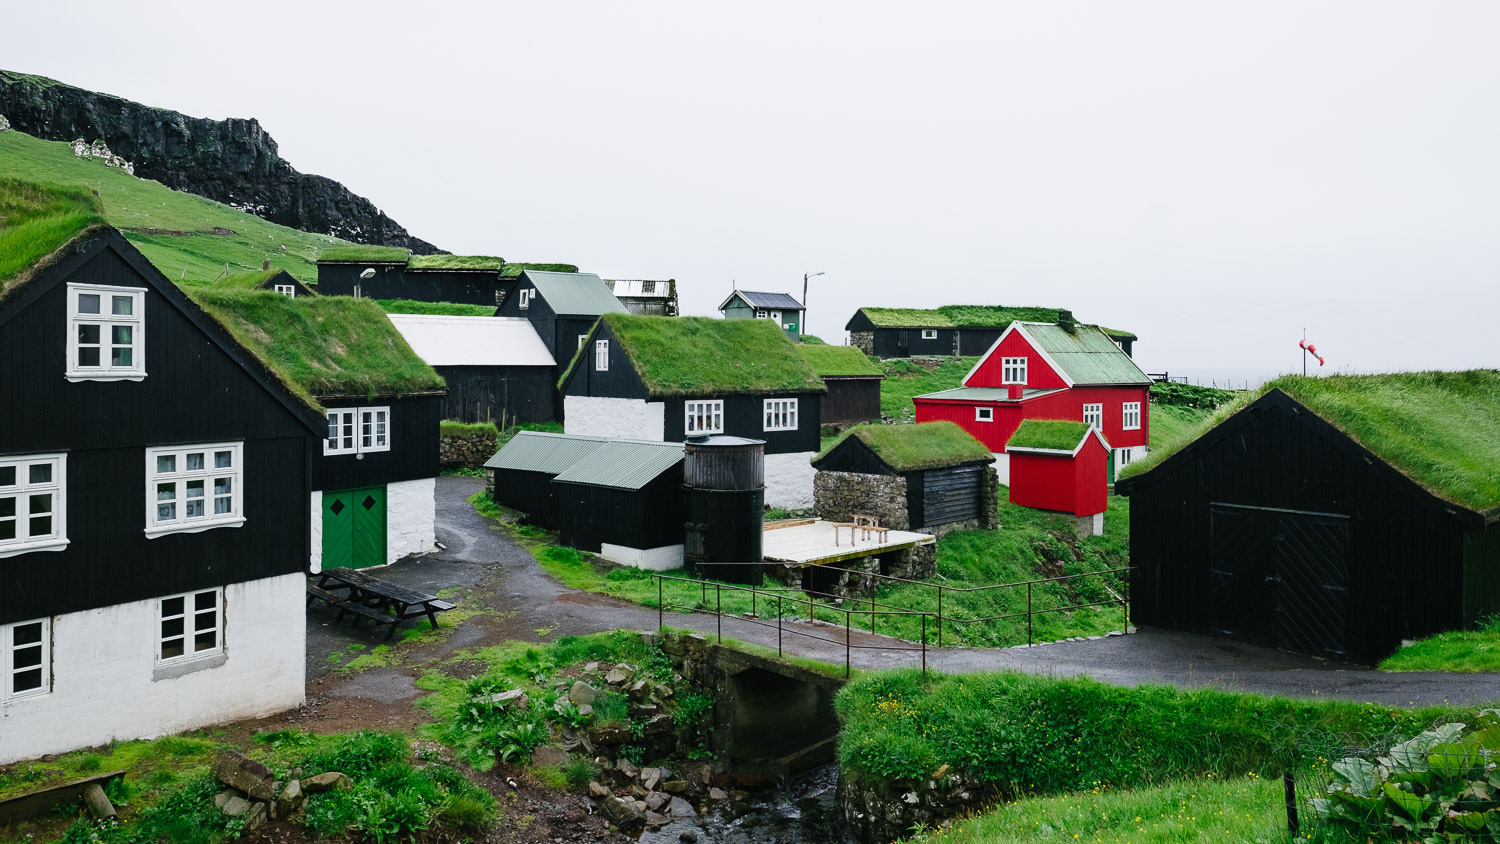 The town of Mykines